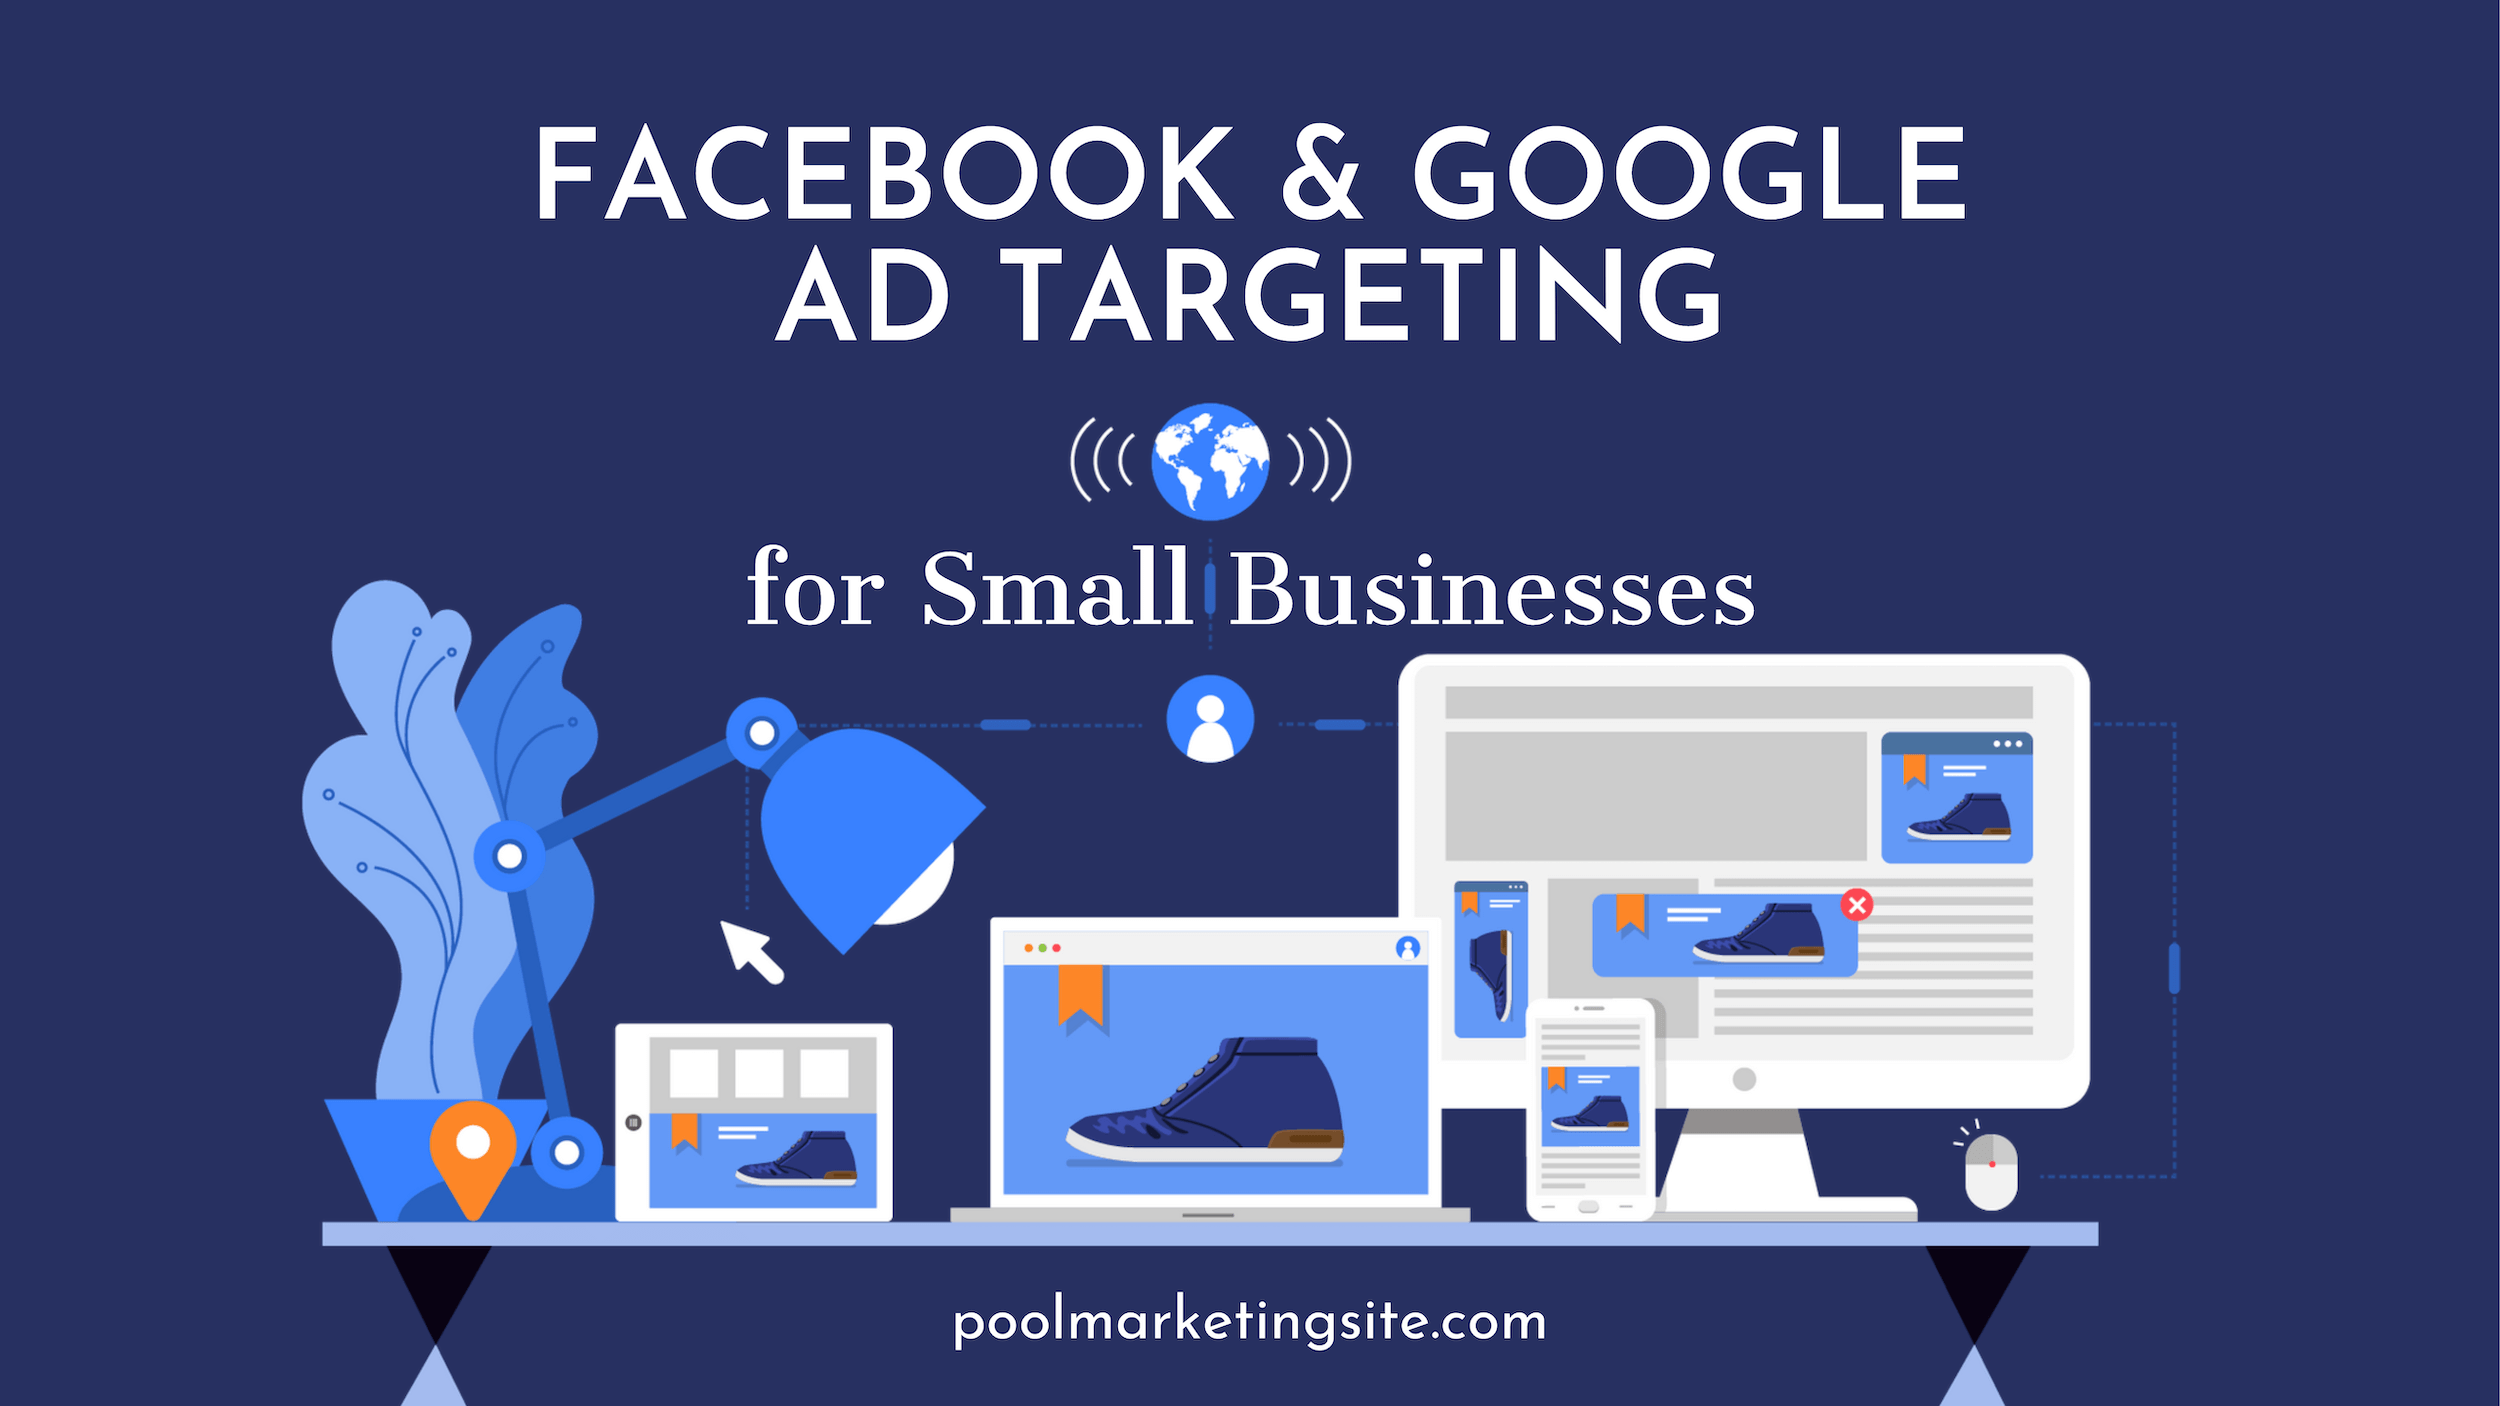 Facebook and Google Ad Targeting for Small Businesses